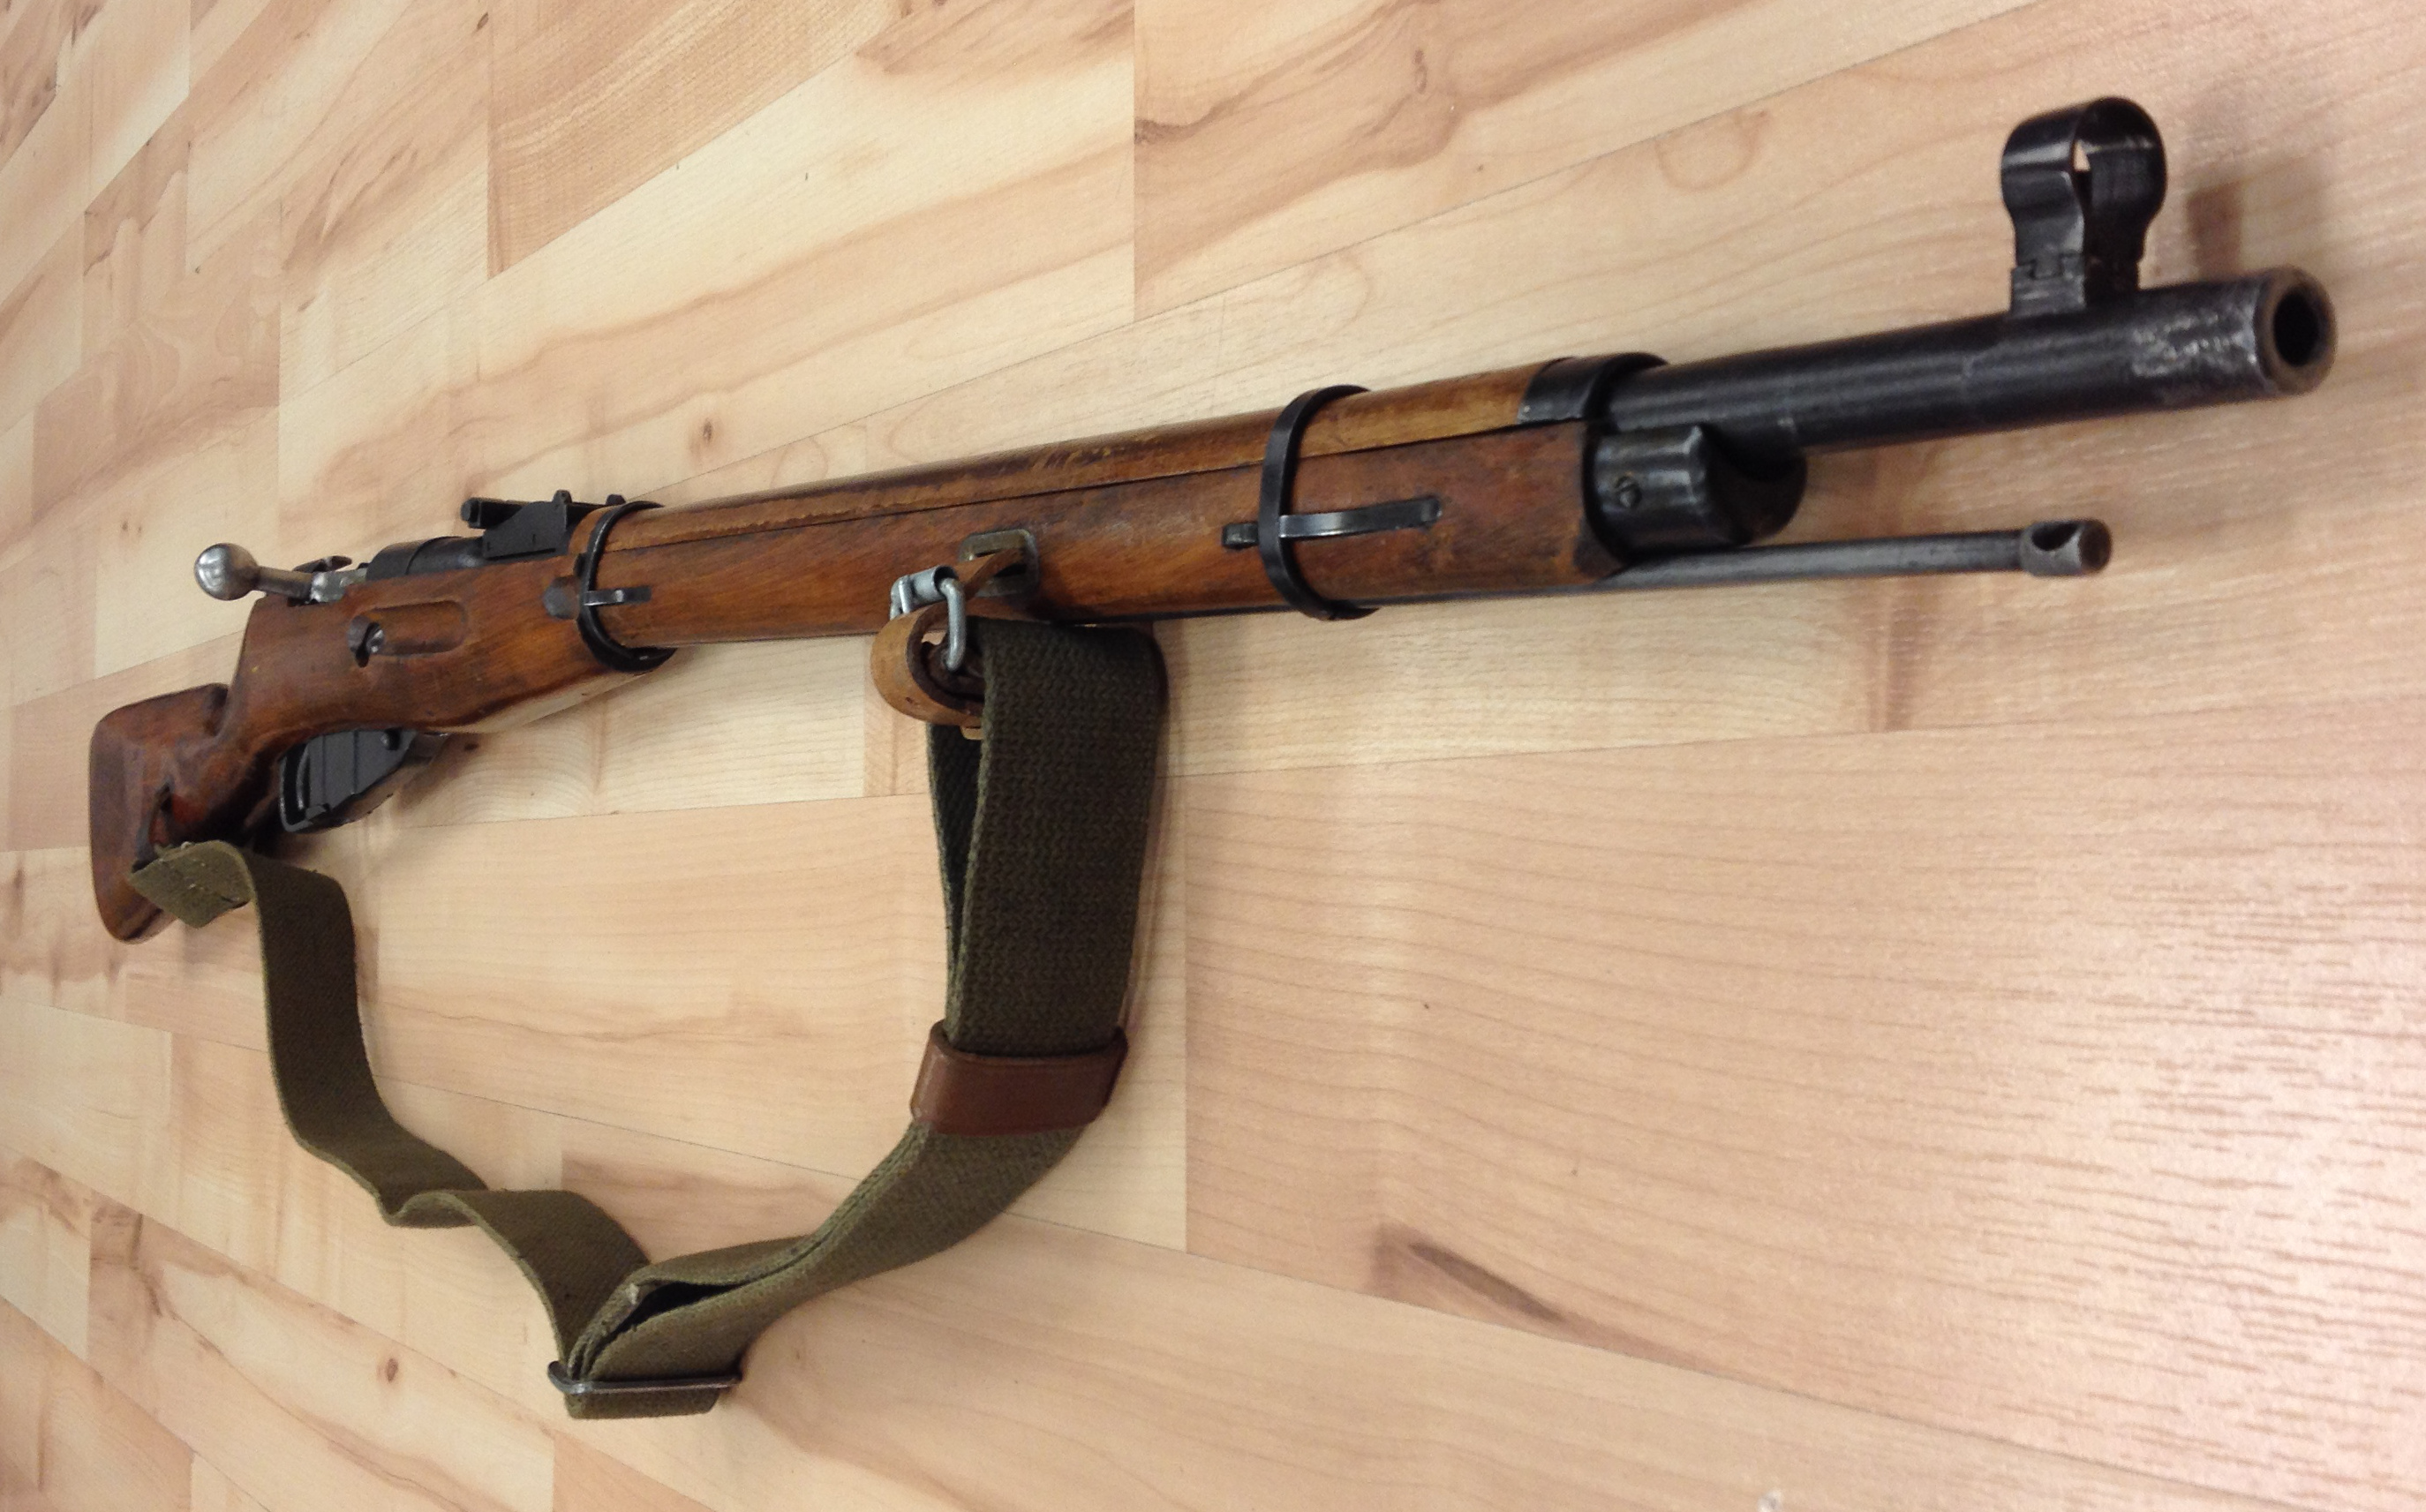 USED Mosin Nagant|7.62x54R, Made in 1943, Includes Sling, Good Condition, No Cosmoline!